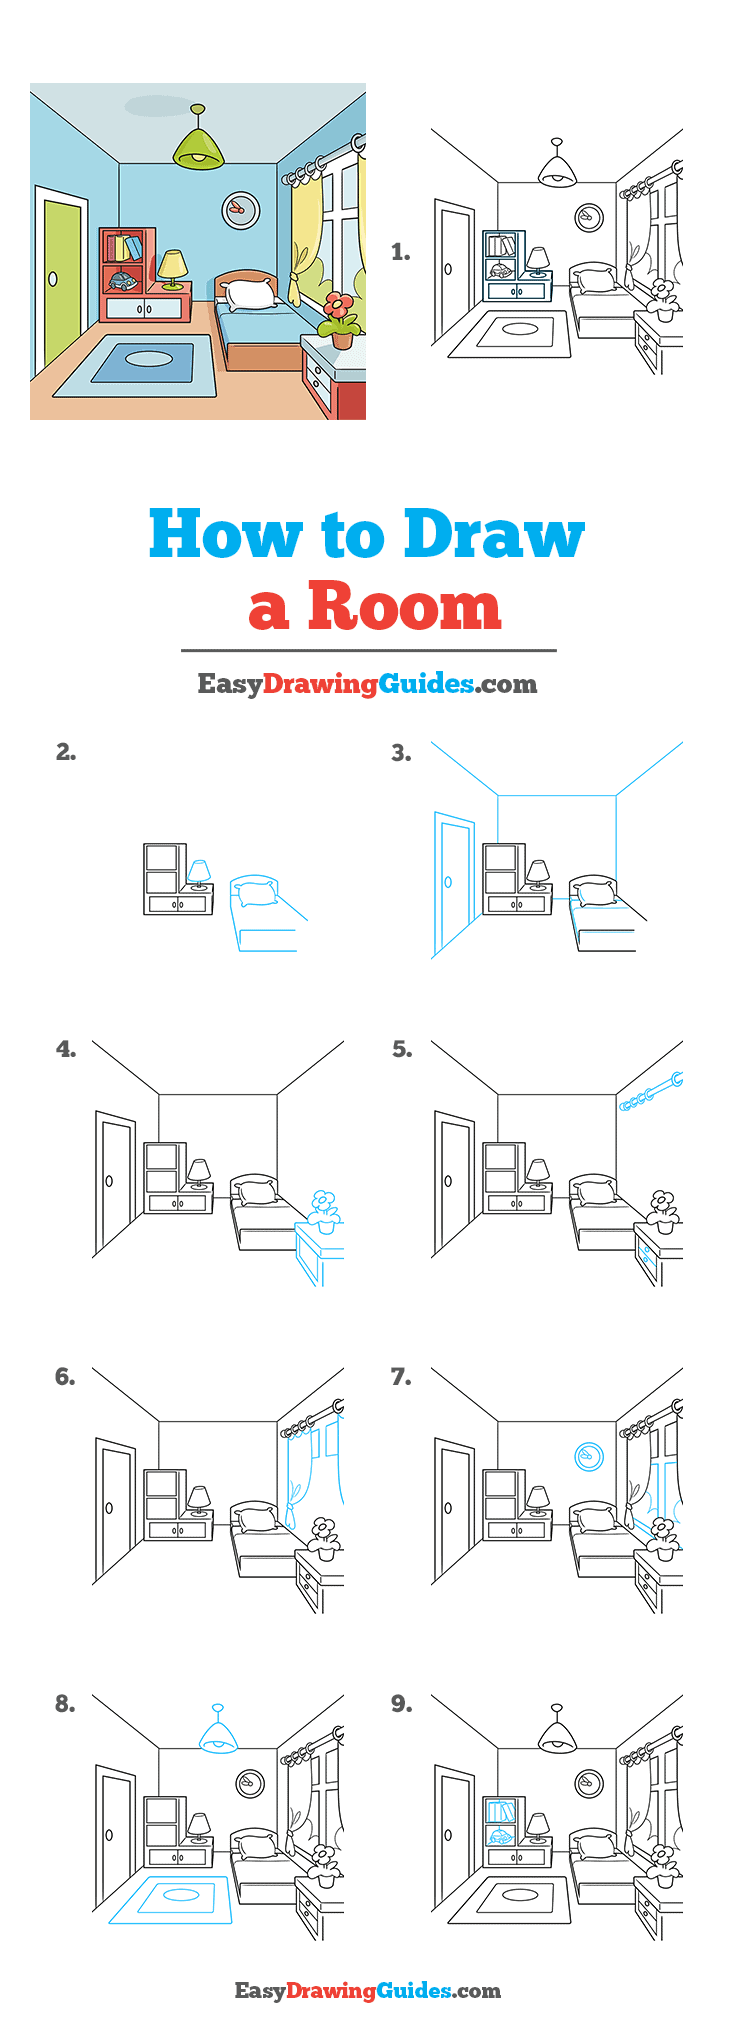 How to Draw a Room Step by Step Tutorial Image